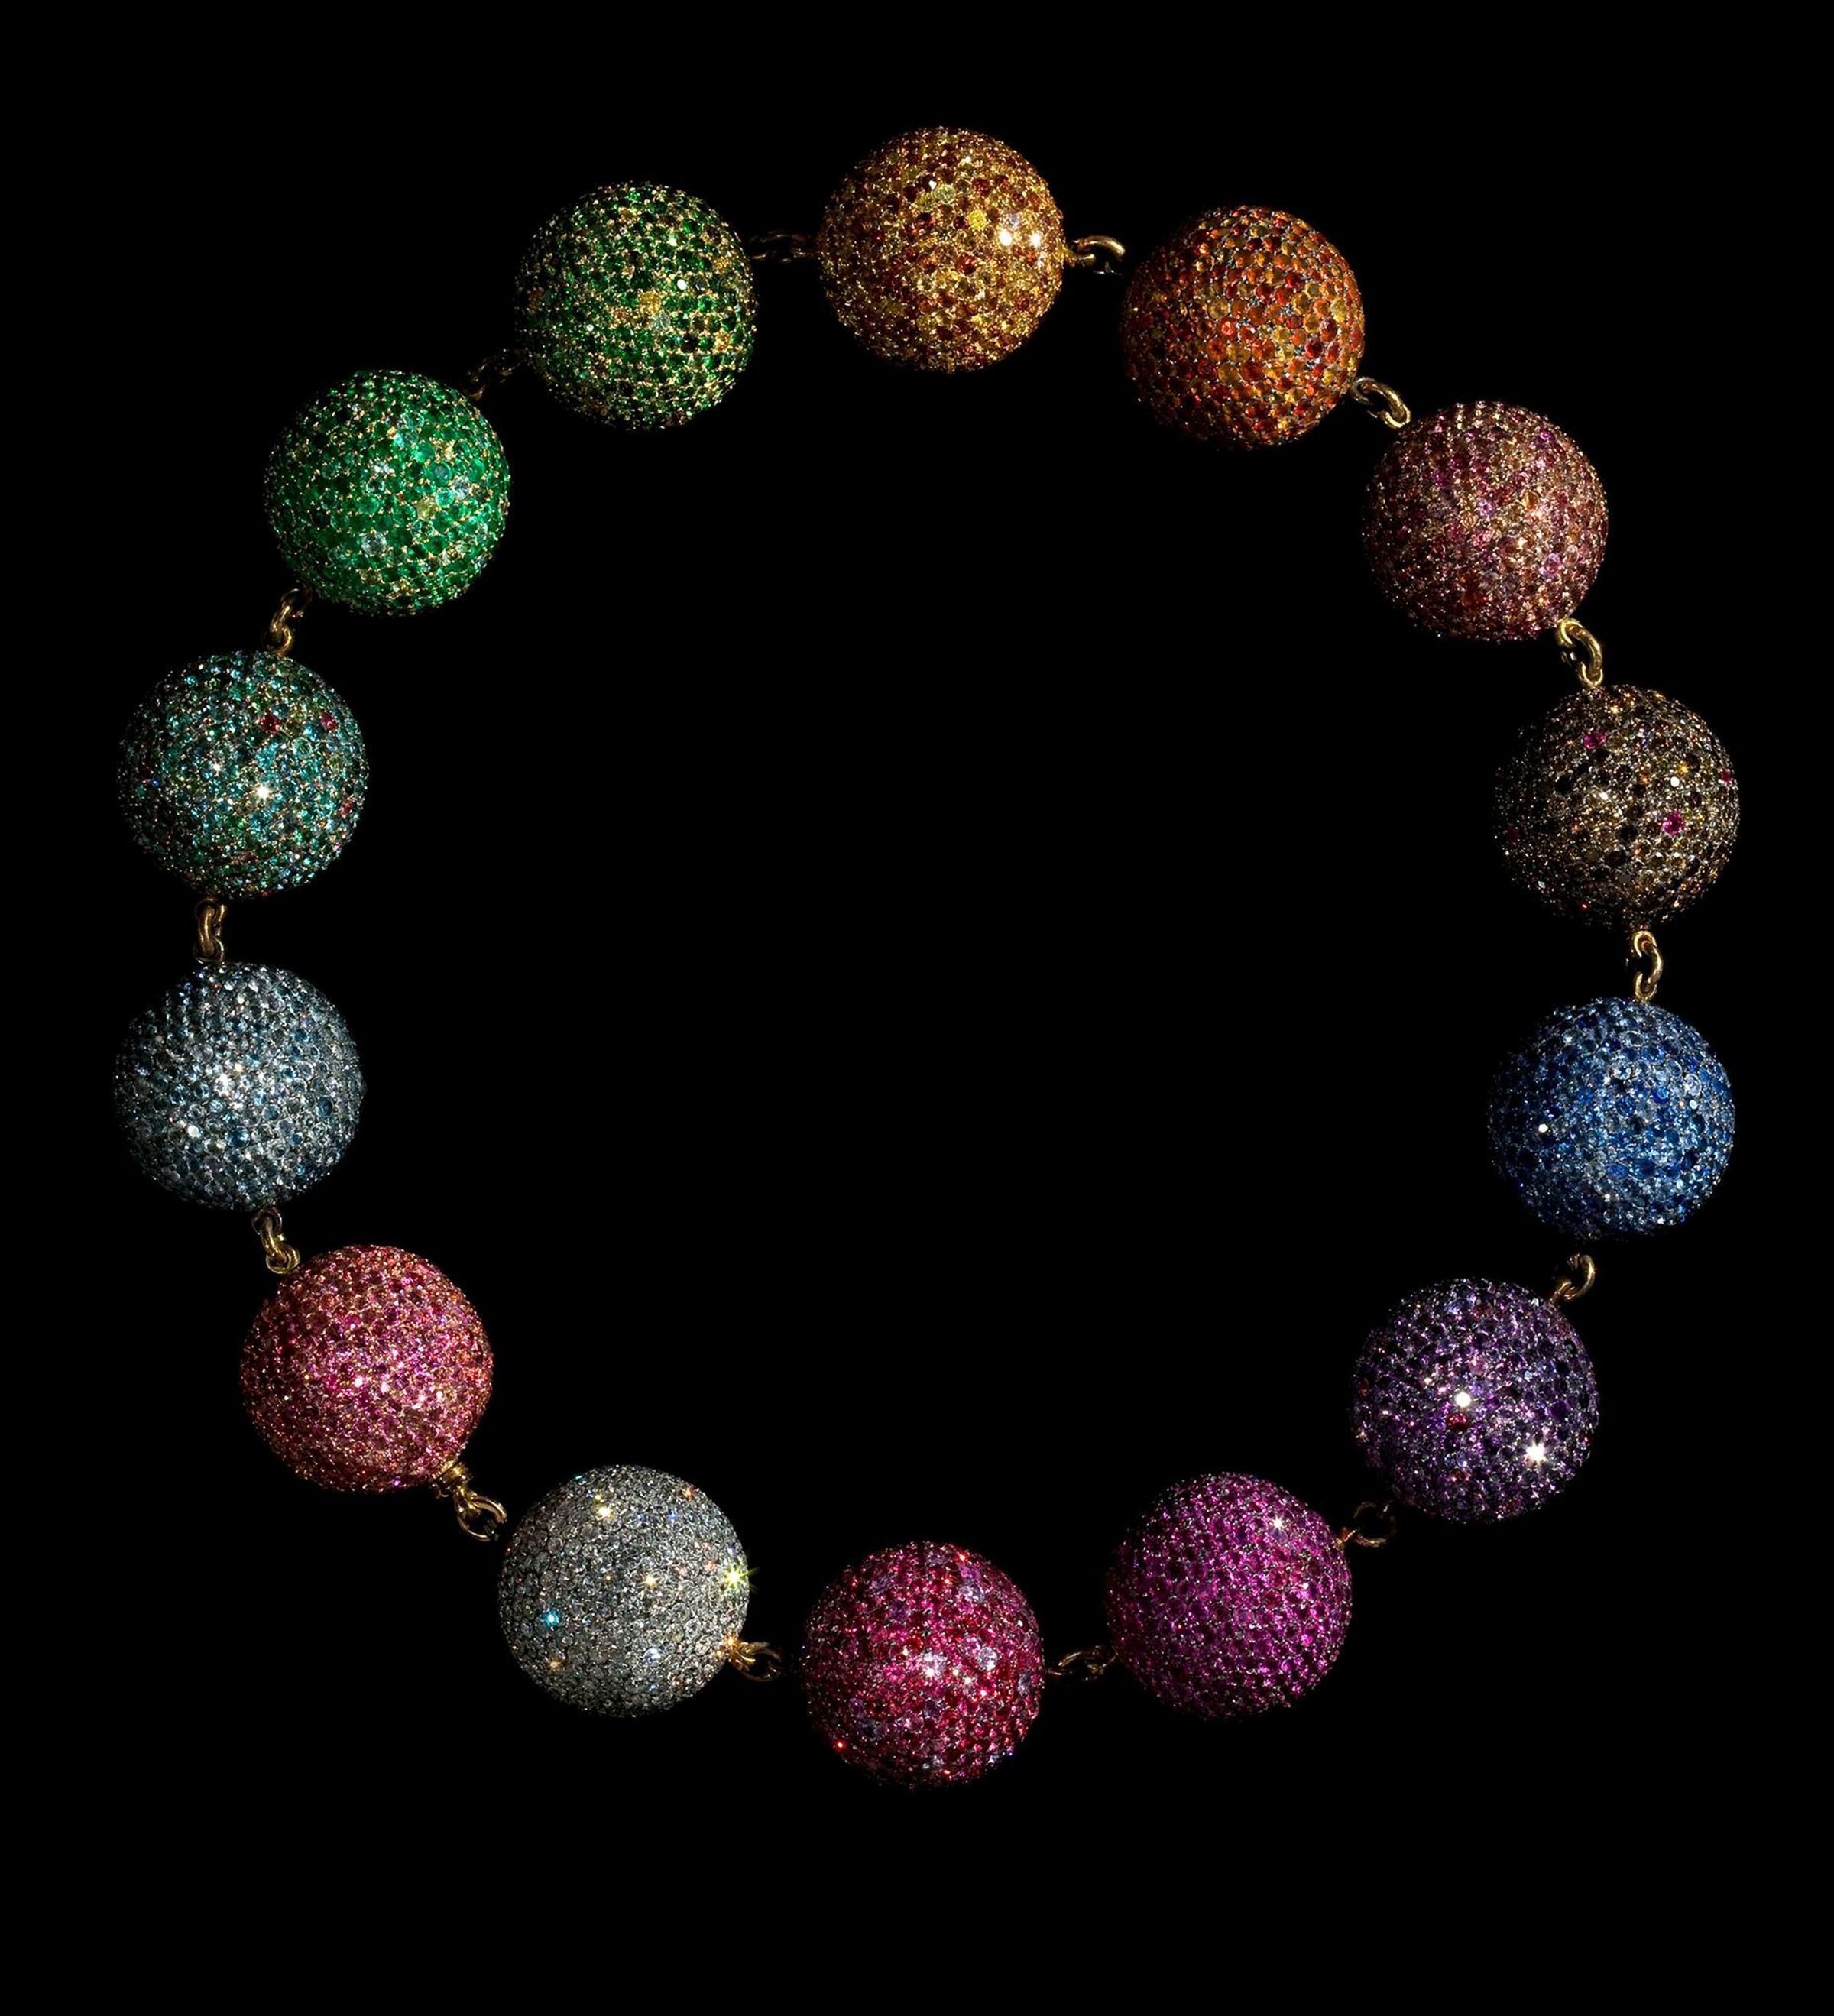 4. Colored Balls Necklace 1999_JAR